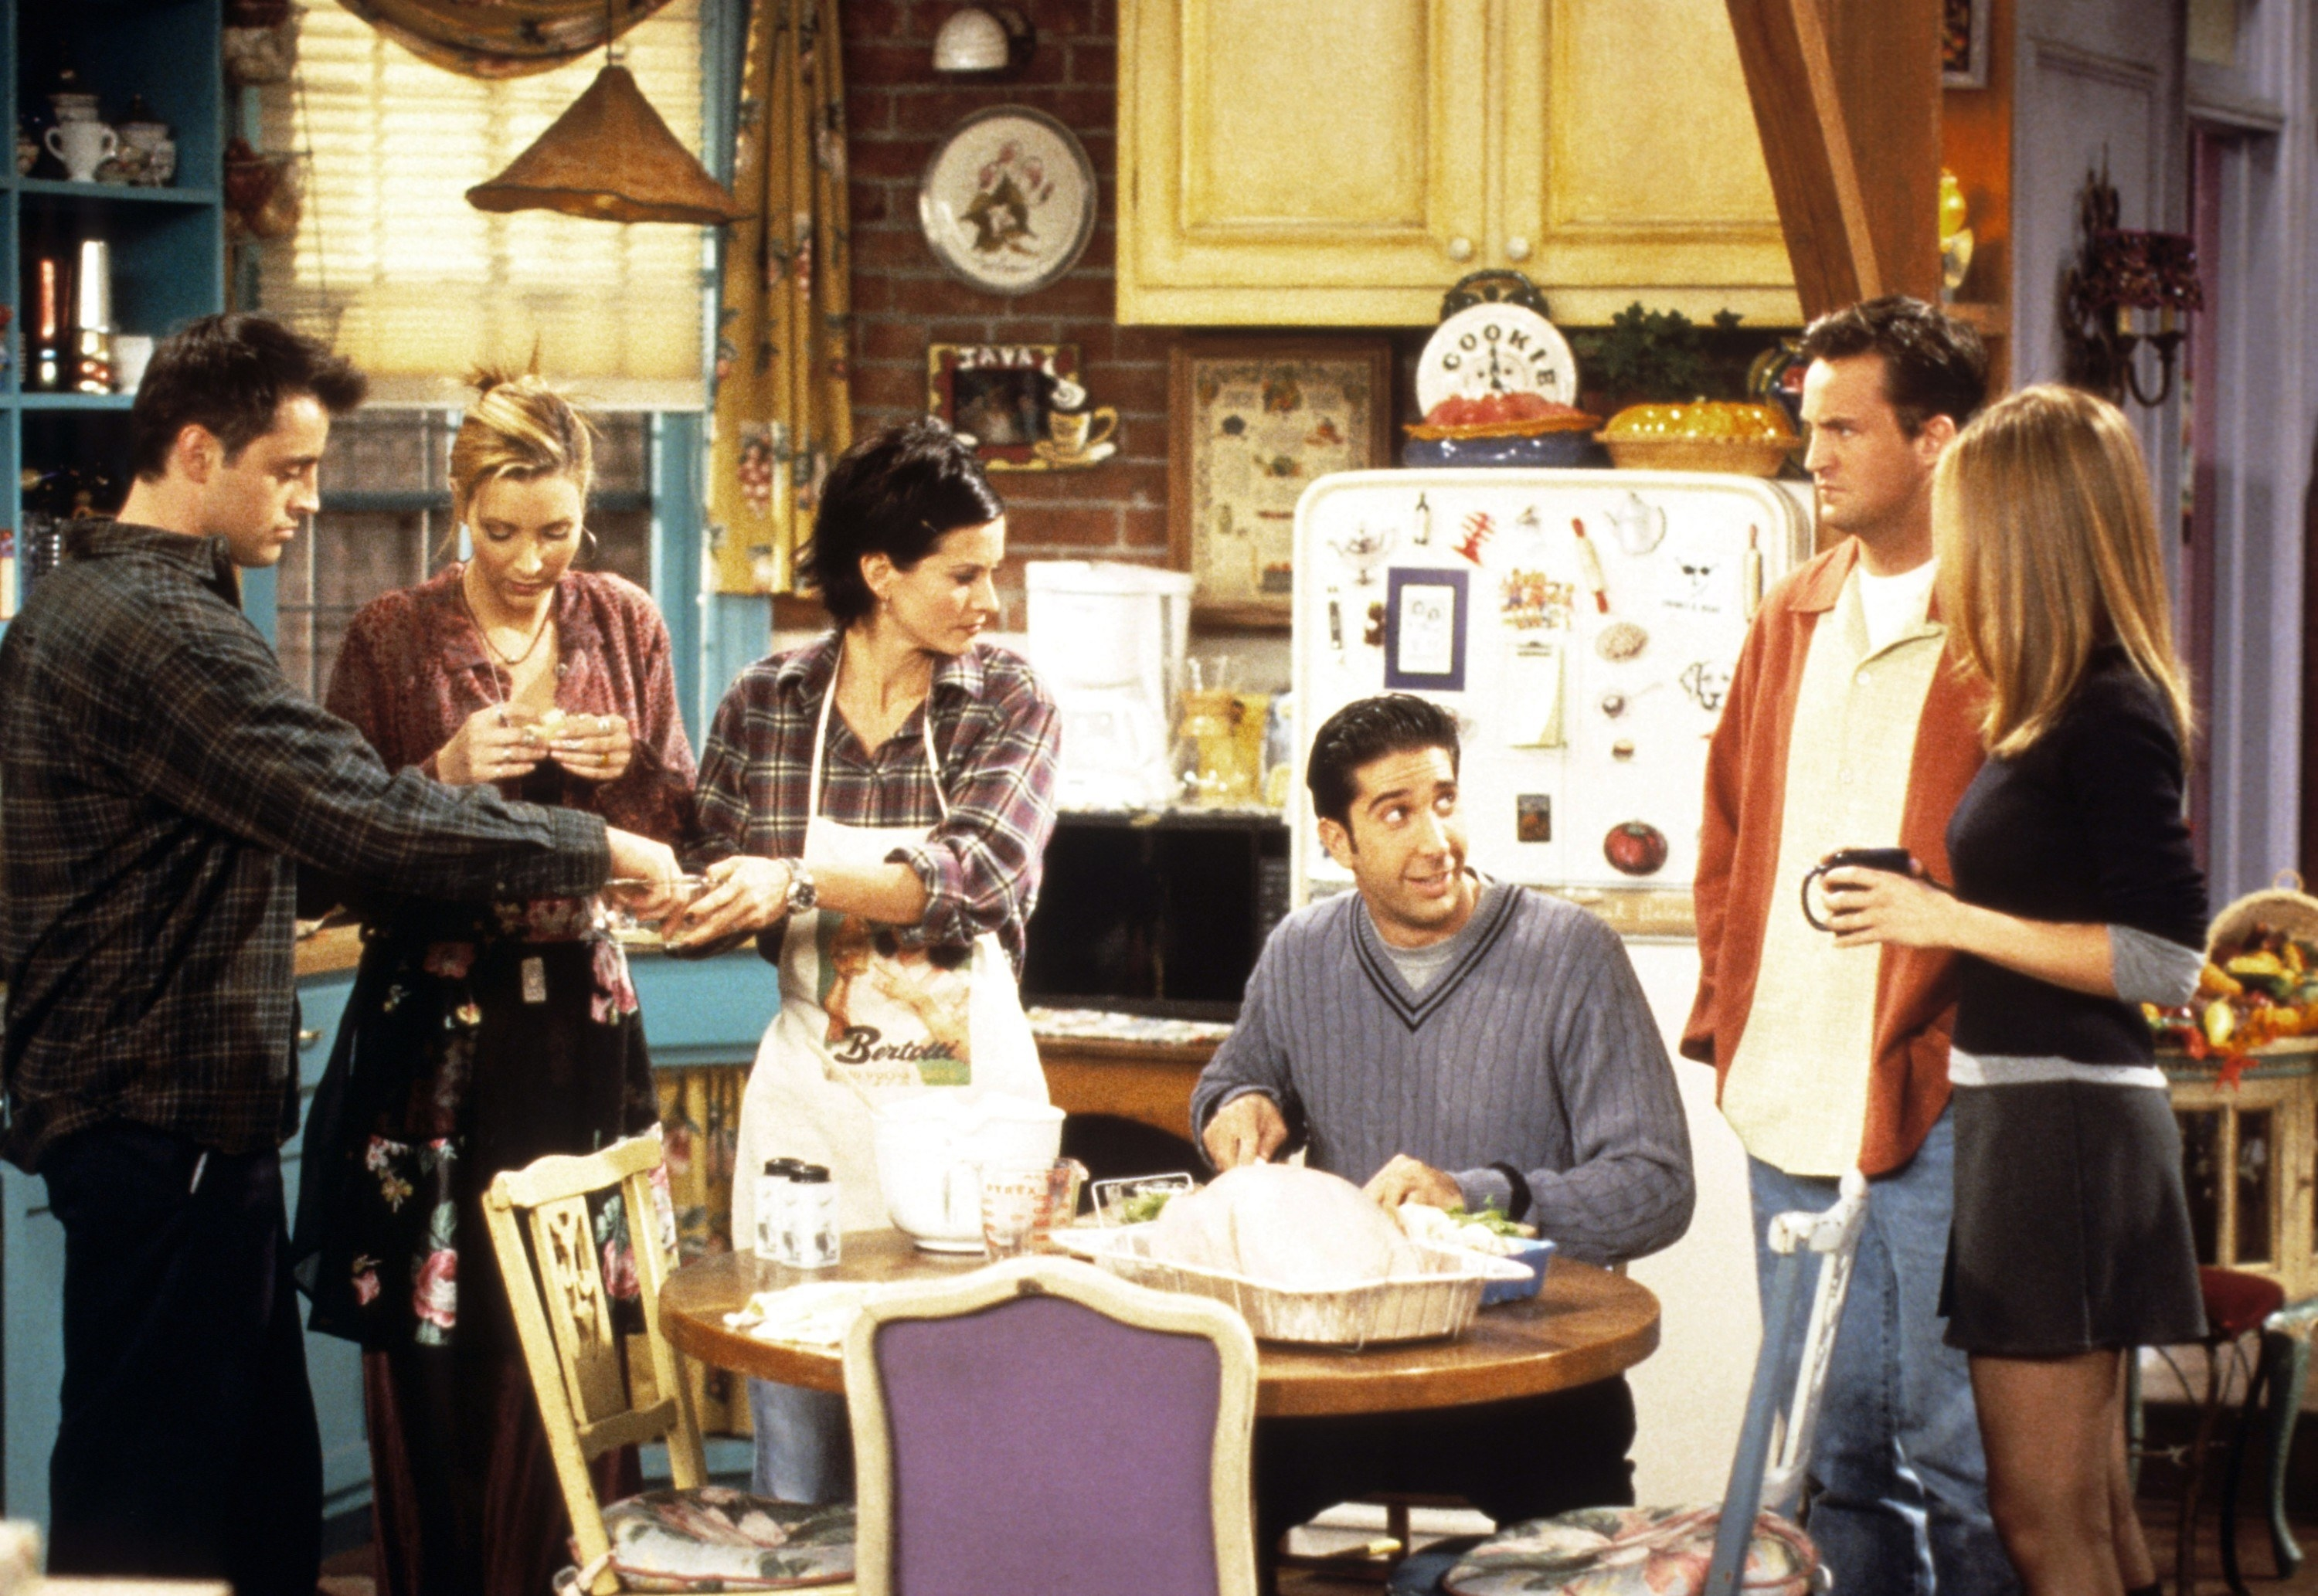 Cast of Friends in the kitchen chatting